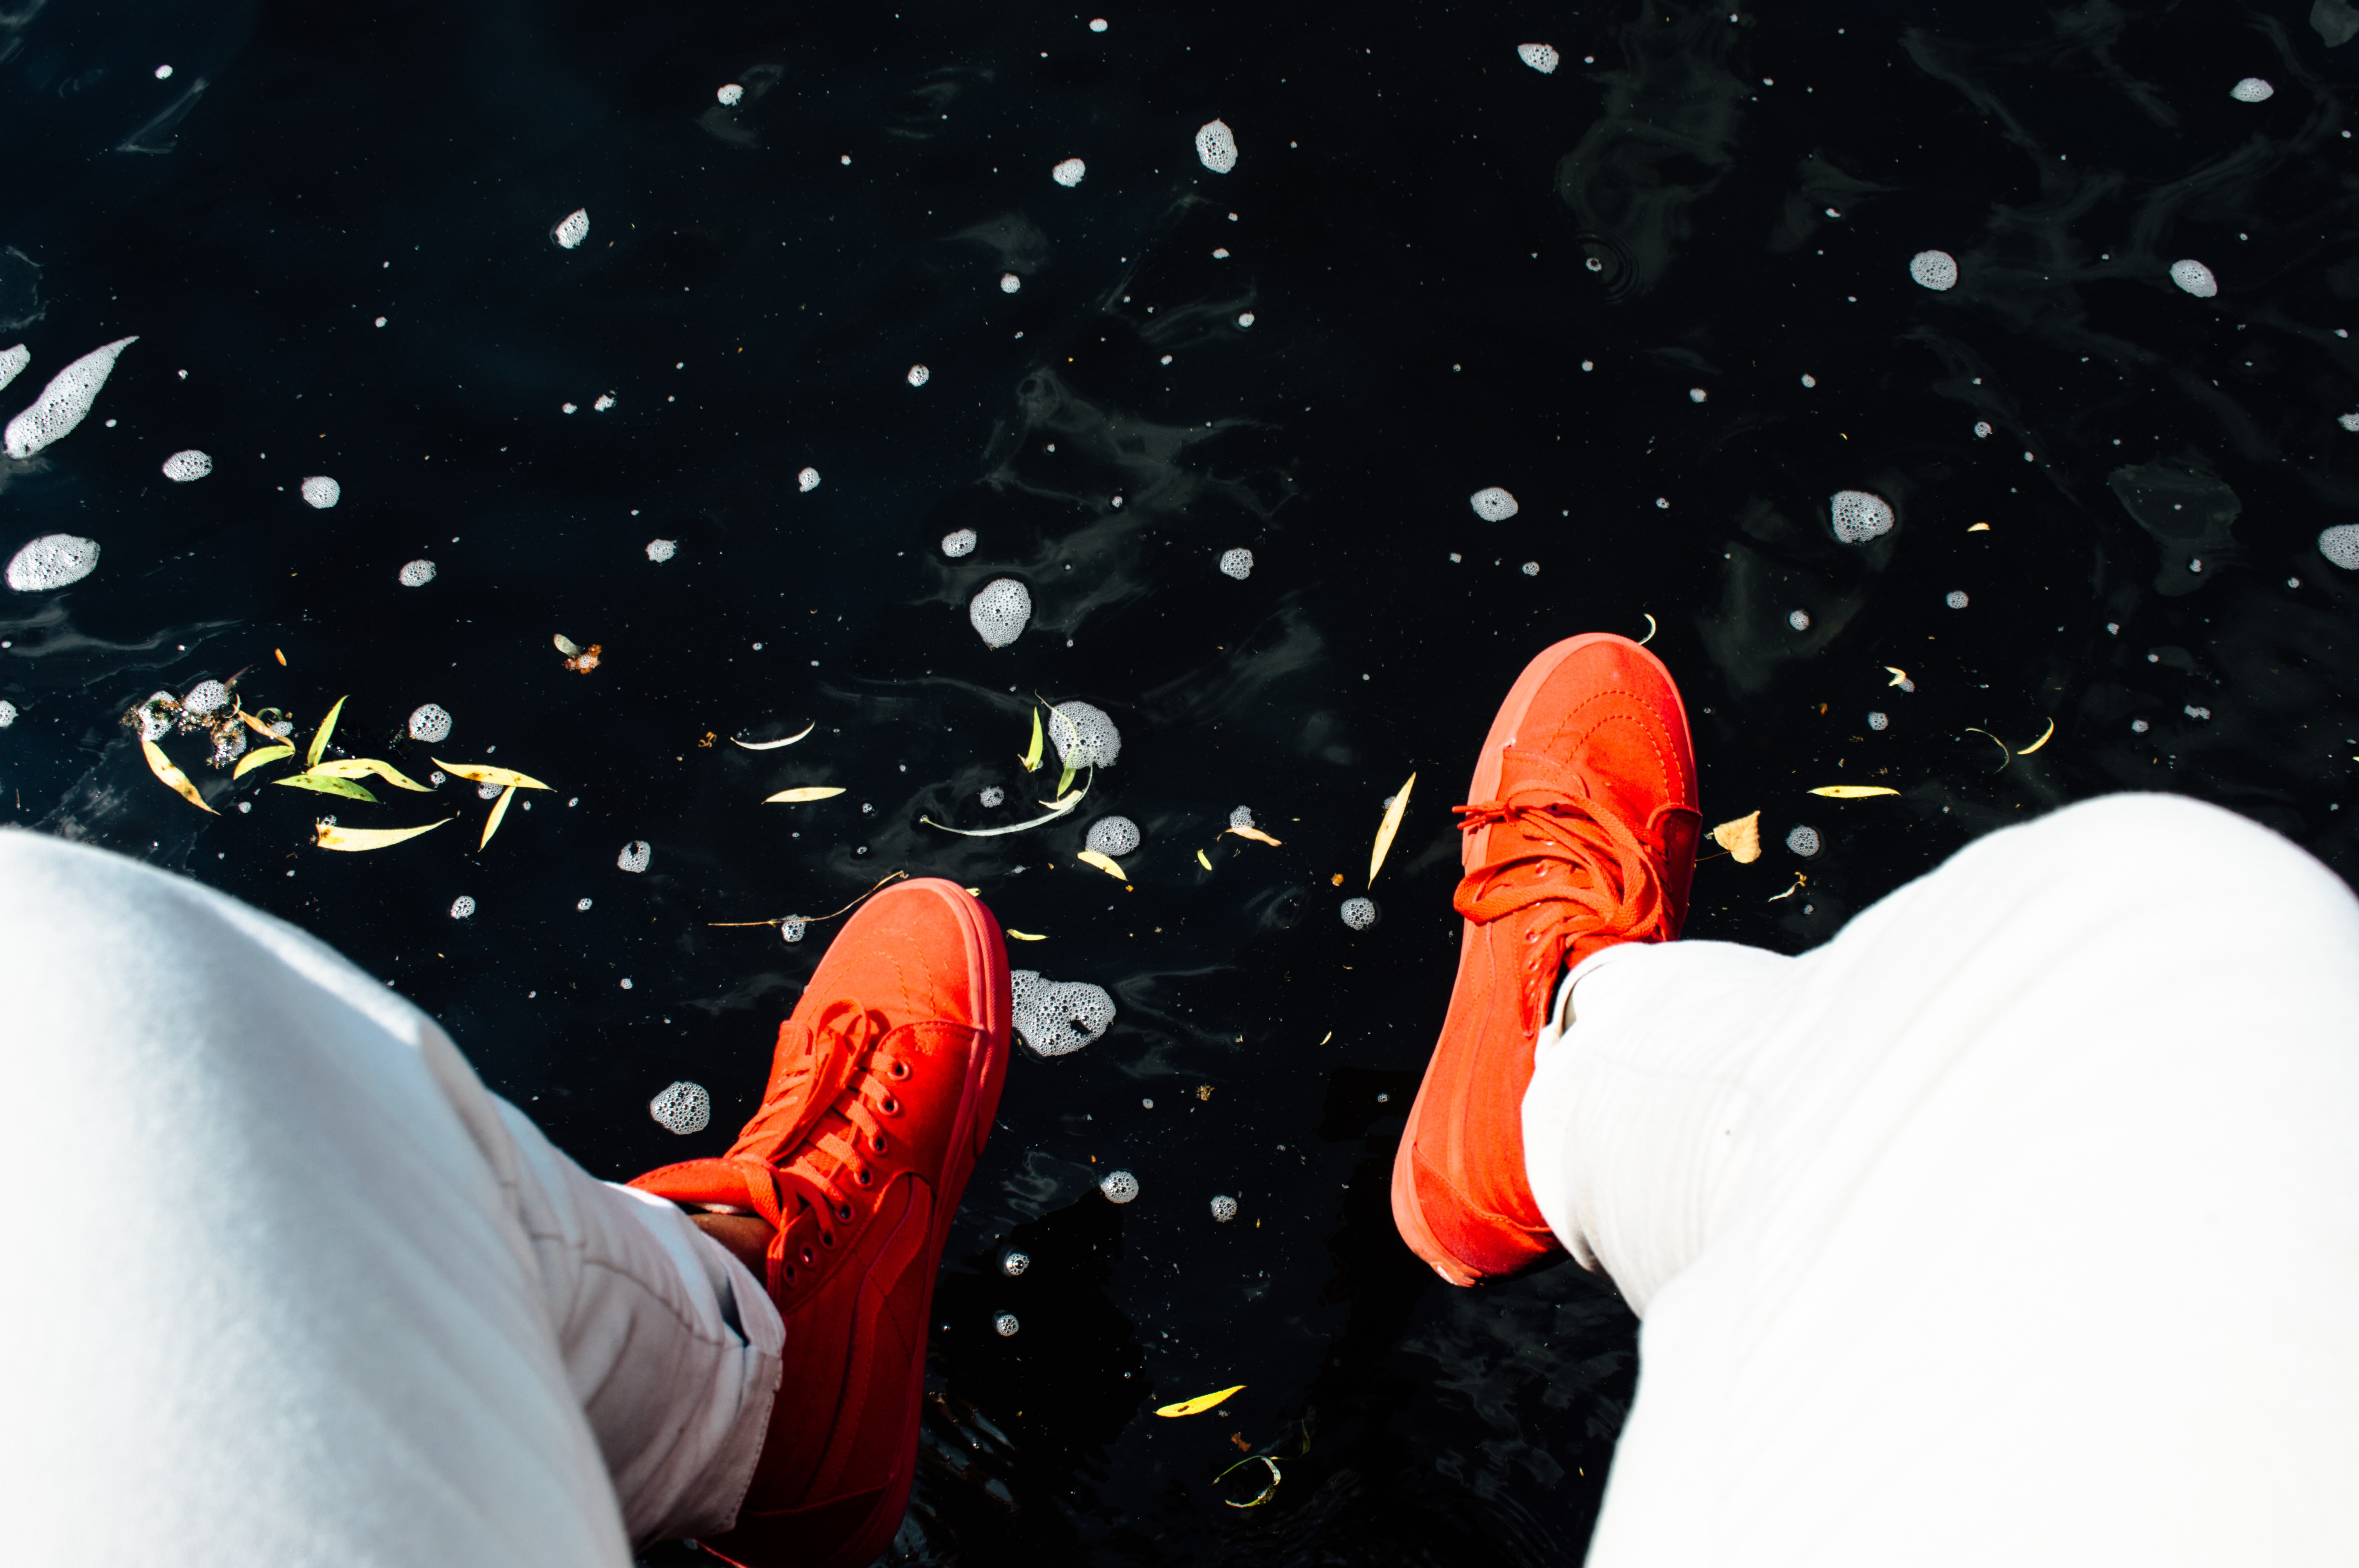 person wearing orange sneakers sitting near water